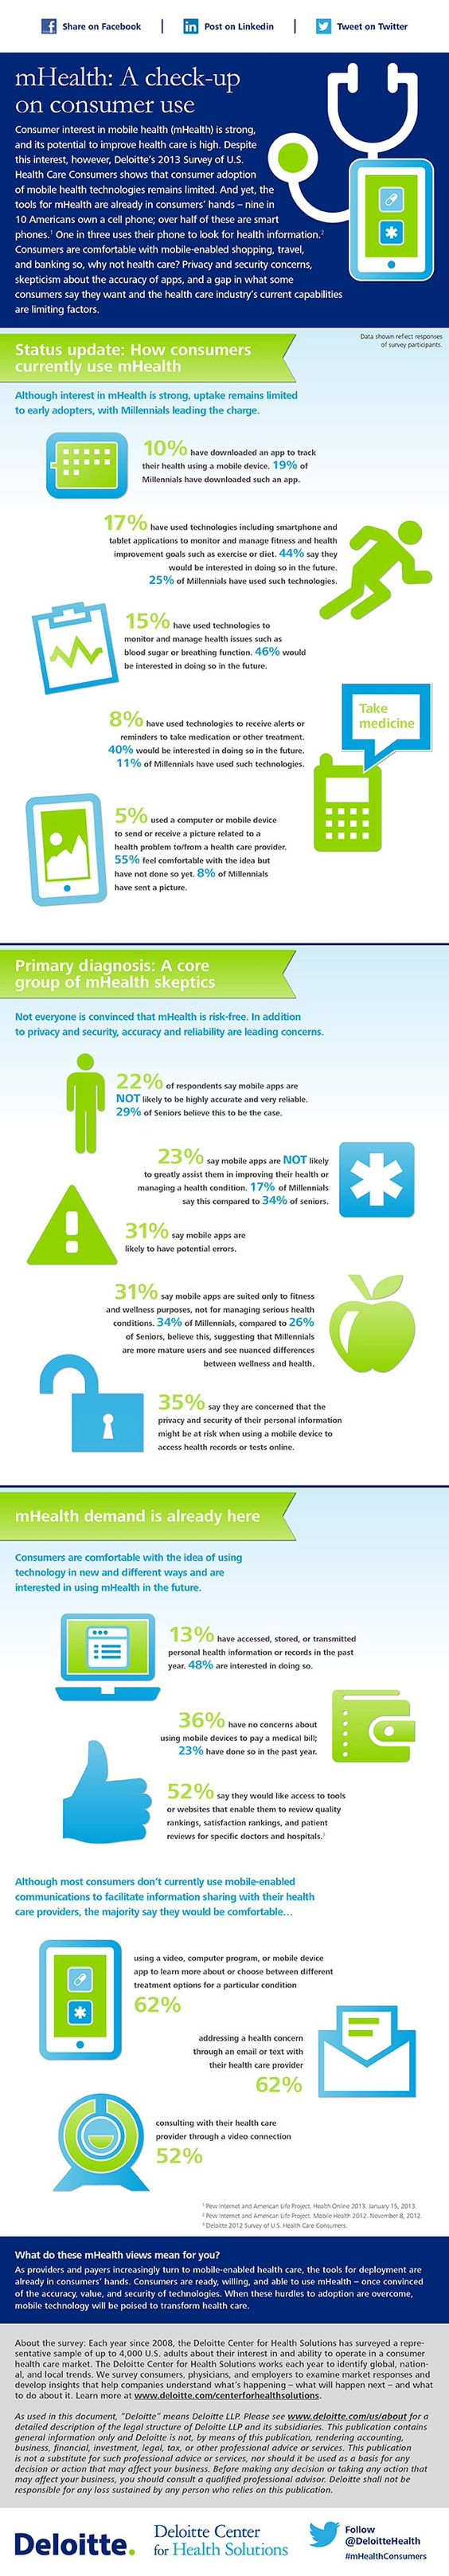 Infographic—mHealth: A check-up on consumer use. Via @Deloitte Health